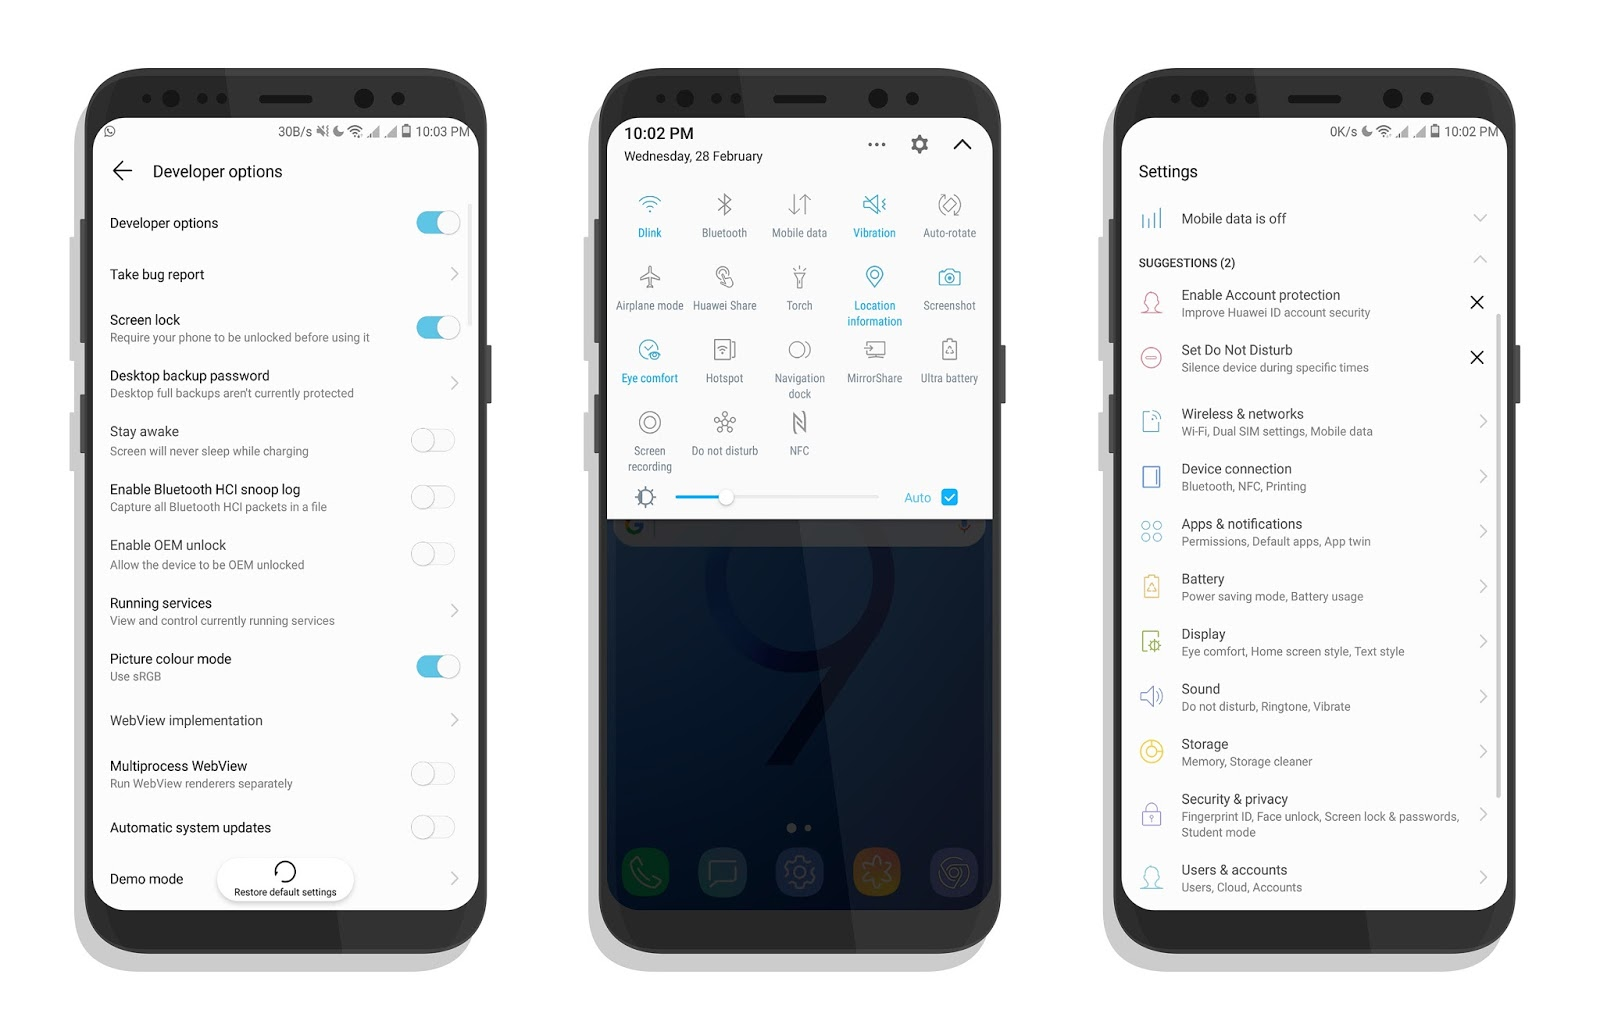 Download Samsung Galaxy S9 Theme for EMUI 5 and 4 X Devices